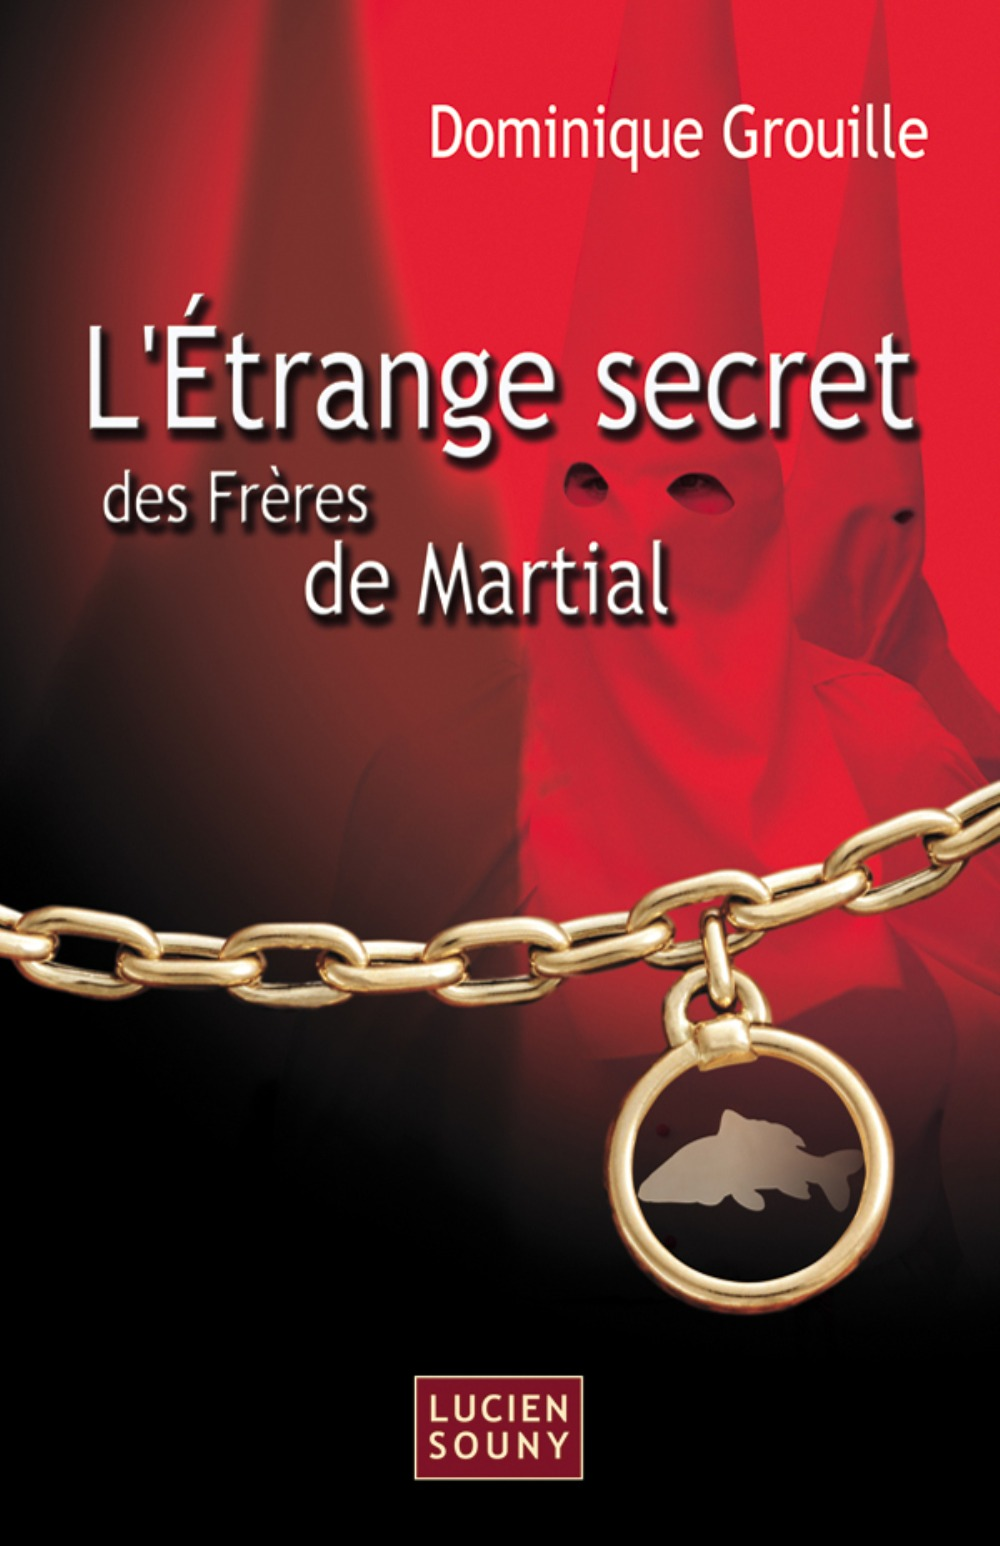 ETRANGE SECRET DES FRERES DE MARTIAL